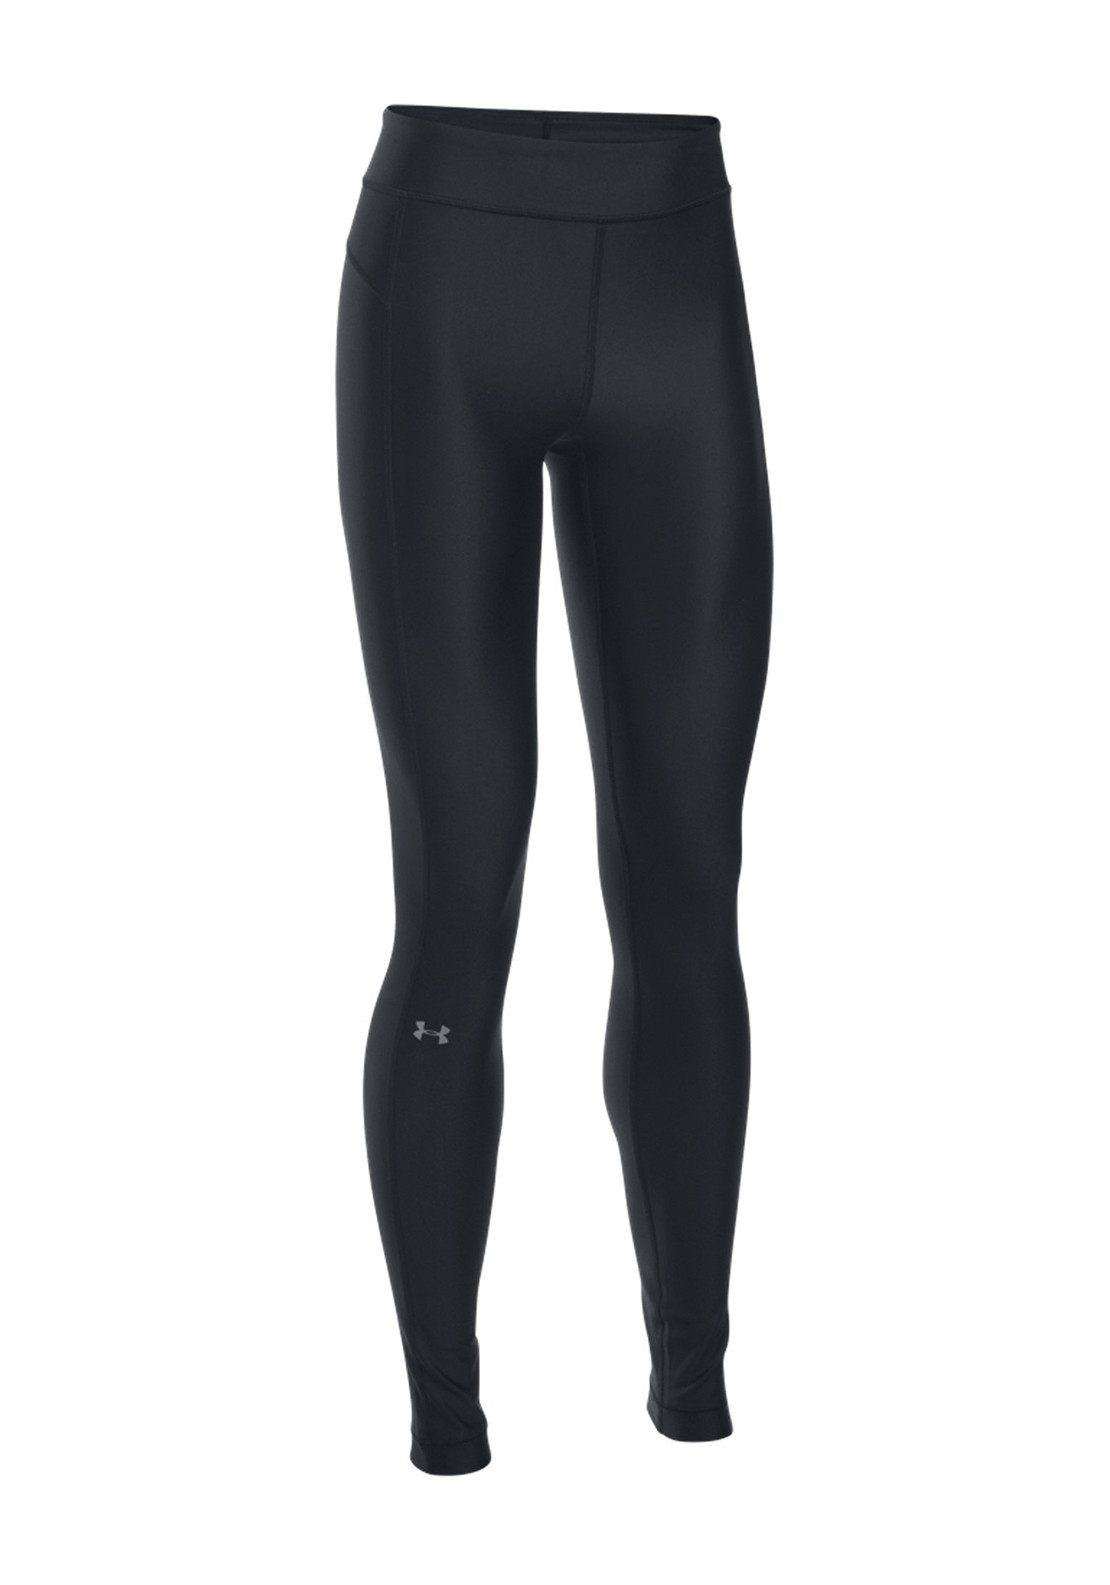 under armour leggings. under armour womens heat gear leggings, black. be the first to review this product leggings